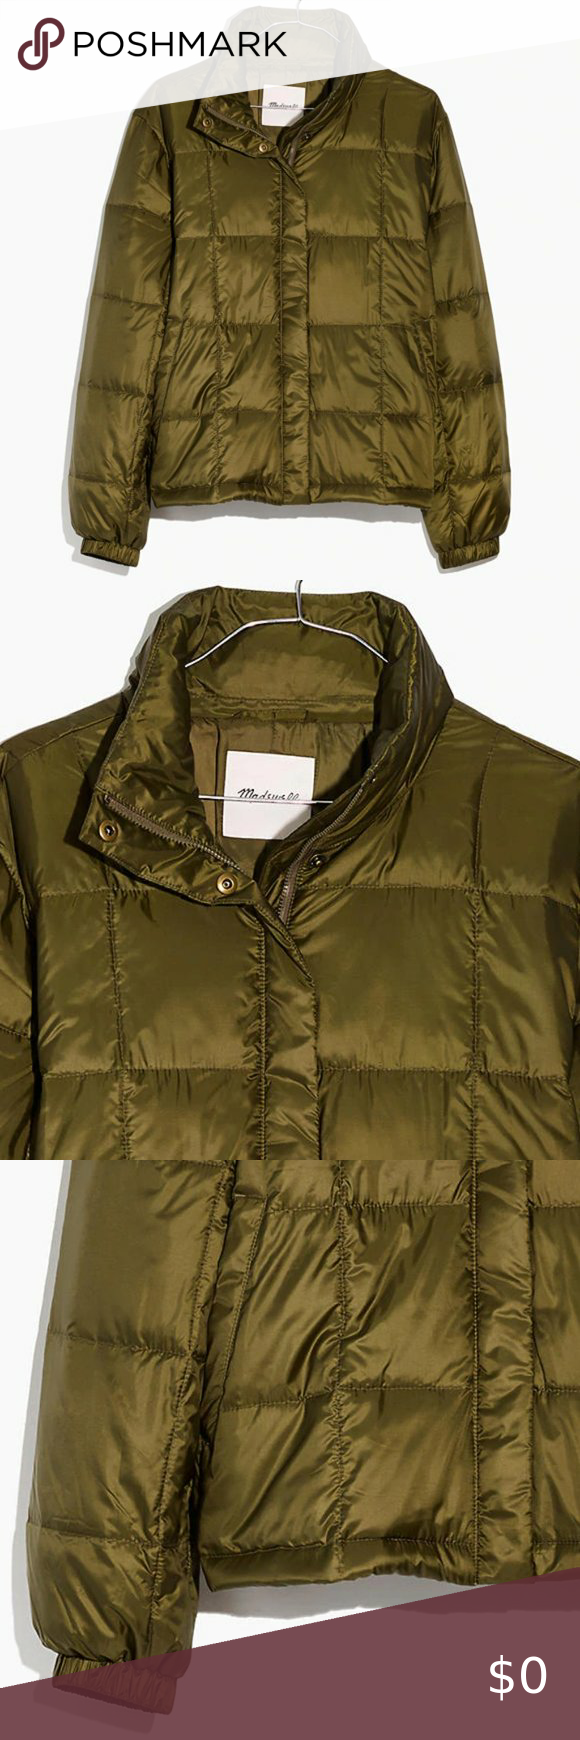 Madewell Travel Buddy Packable Puffer Jacket Large Your New Favorite Travel Ride Or Die And Is Even More Sustai Puffer Jackets Clothes Design Jackets For Women [ 1740 x 580 Pixel ]